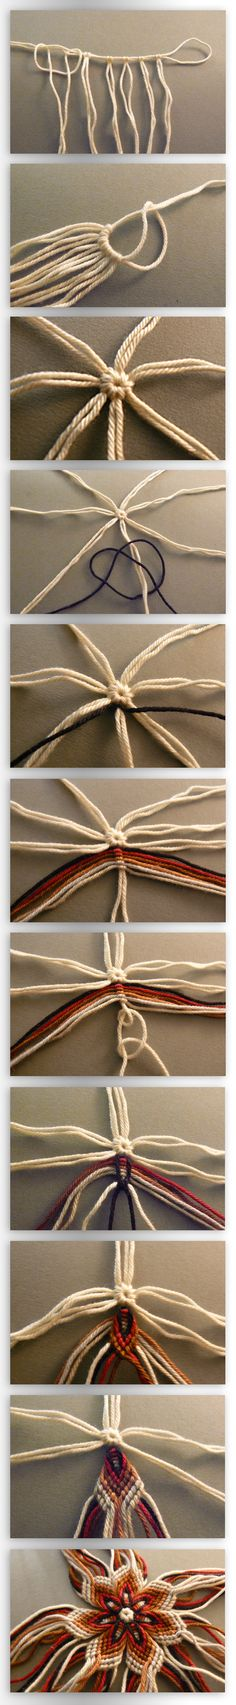 Pouch Tutorial Part I (Bottom) by ~nimuae on deviantART